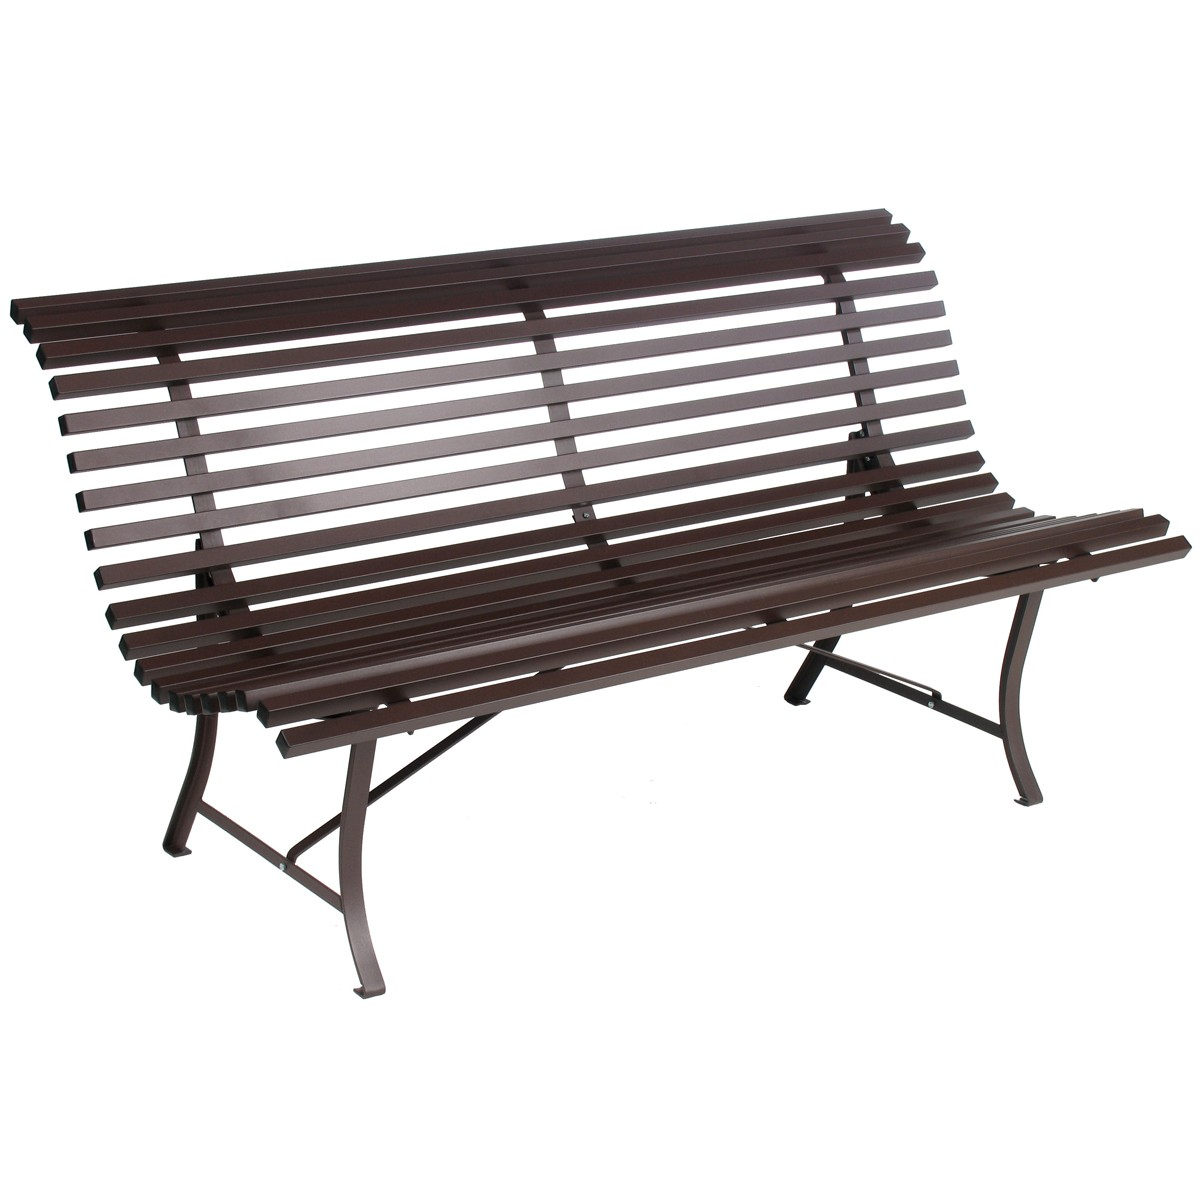 Banc Louisiane Rouille